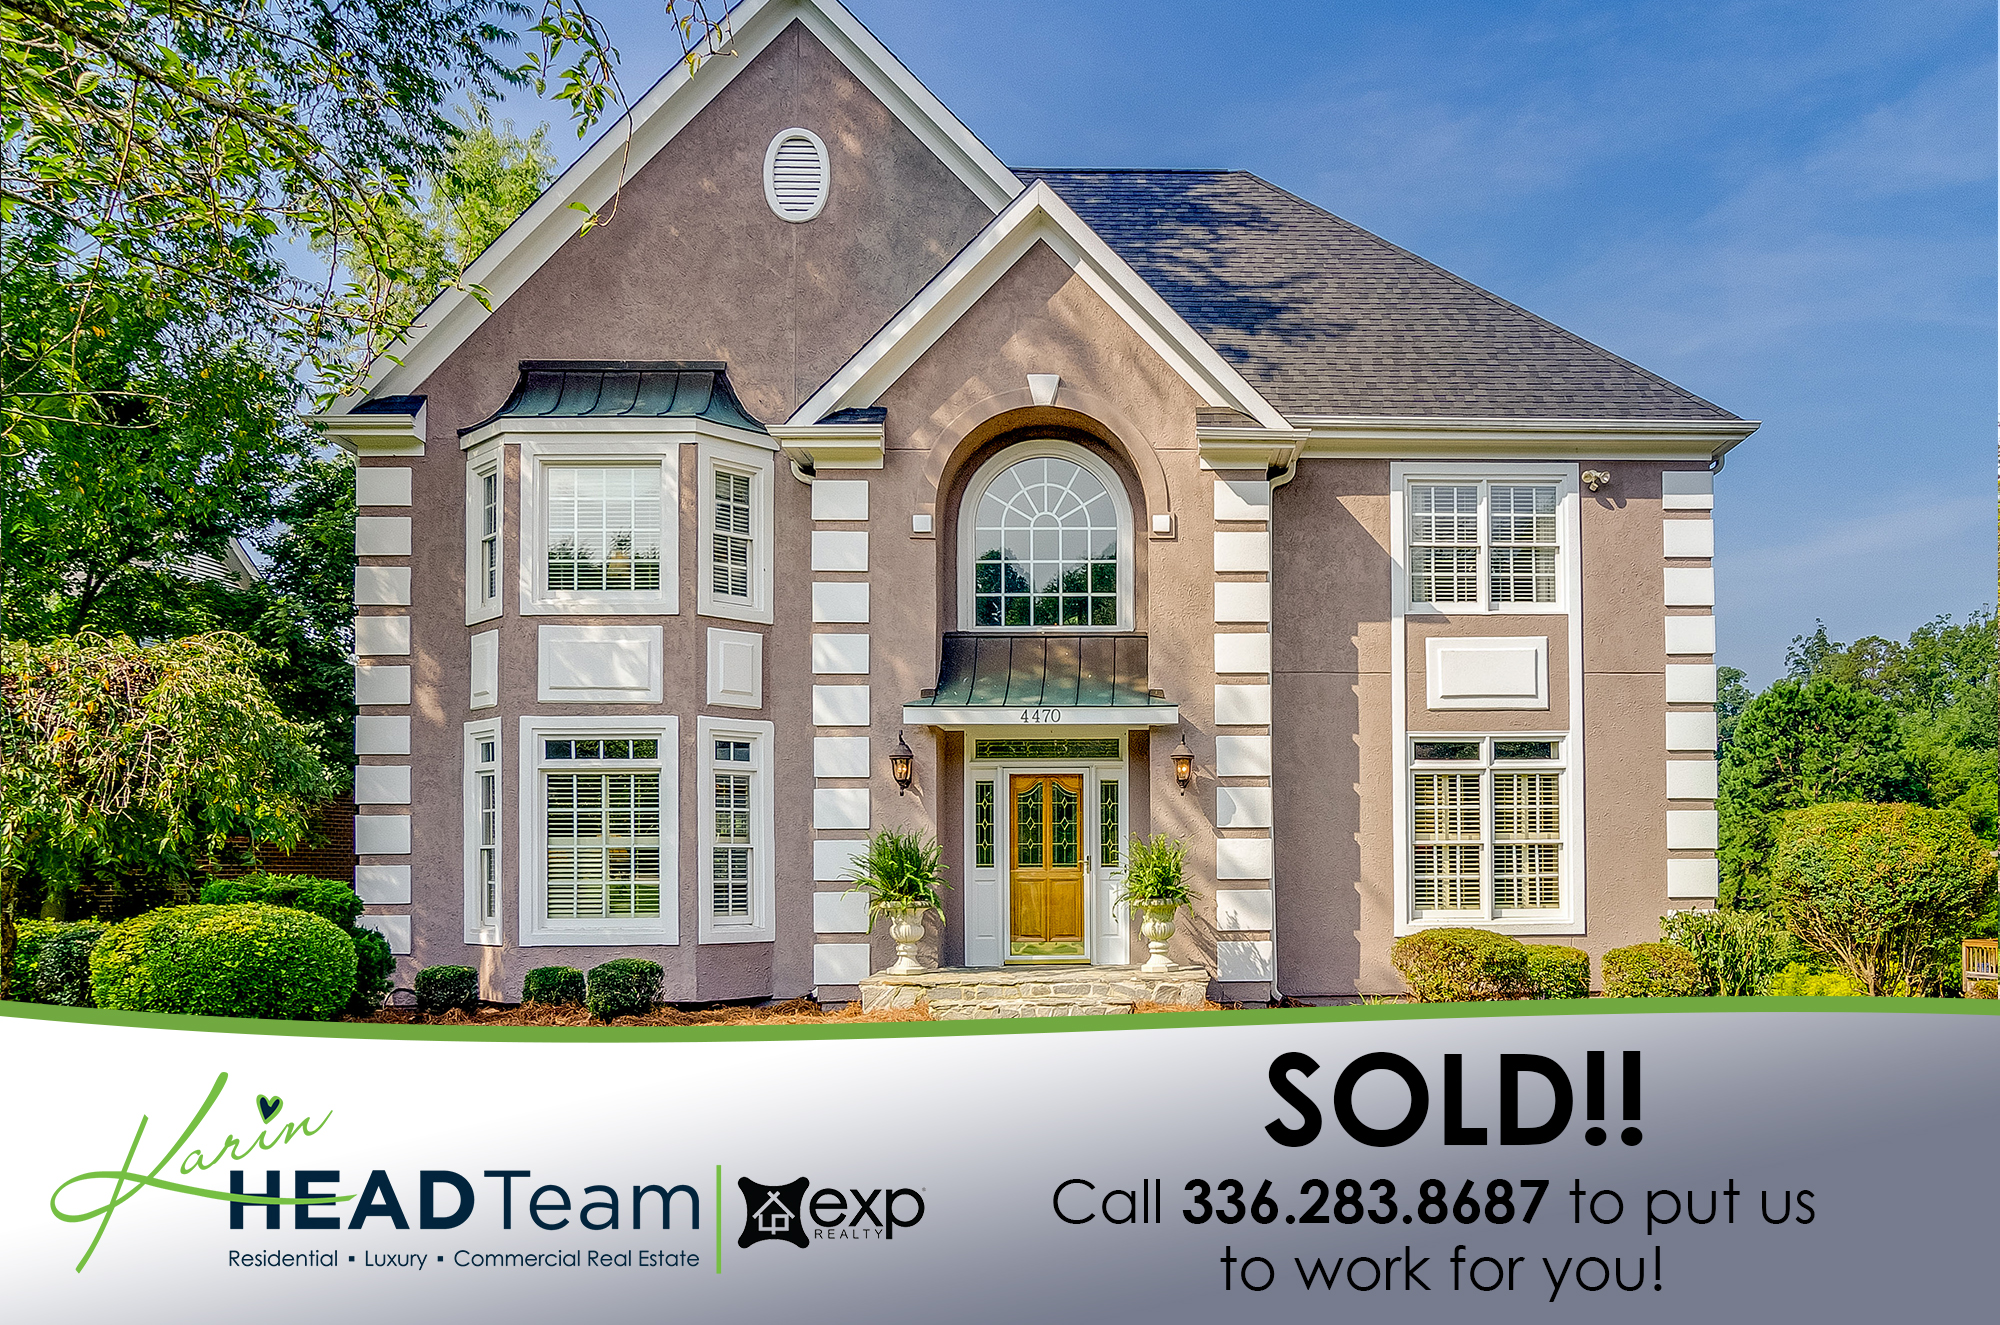 4470 Pebble Lake Dr_Sold.jpg